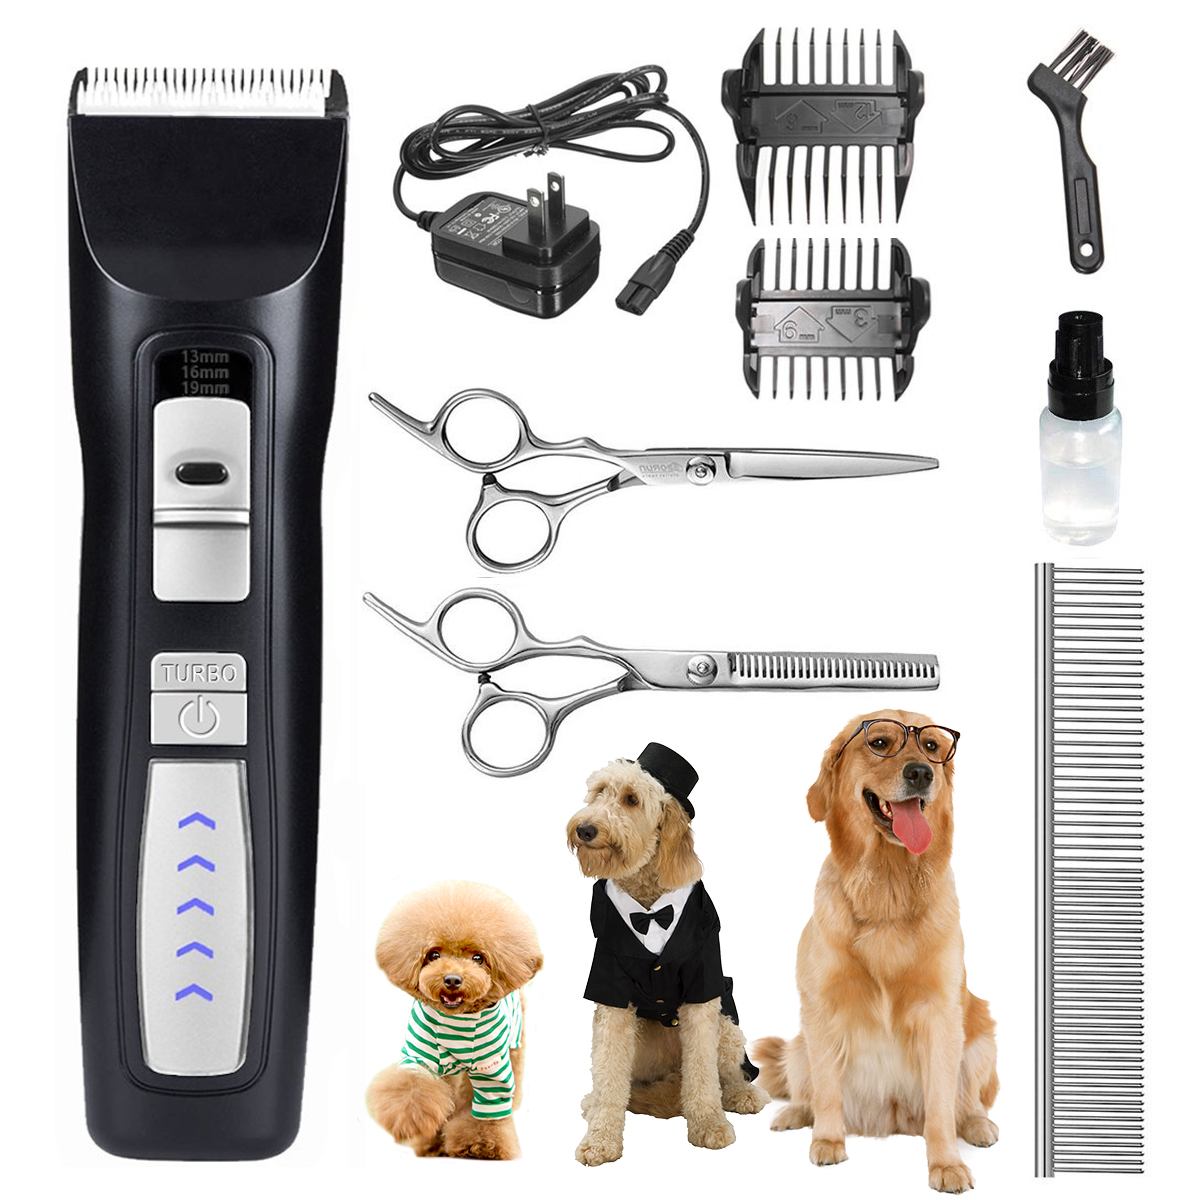 Dog Pet Grooming Clippers for Thick fur , Focuspet Low Noise Professional Dog Grooming Clippers Rechargeable Cordless Pet Grooming Clippers Tool Trimmer for Small to Large Dogs Cat